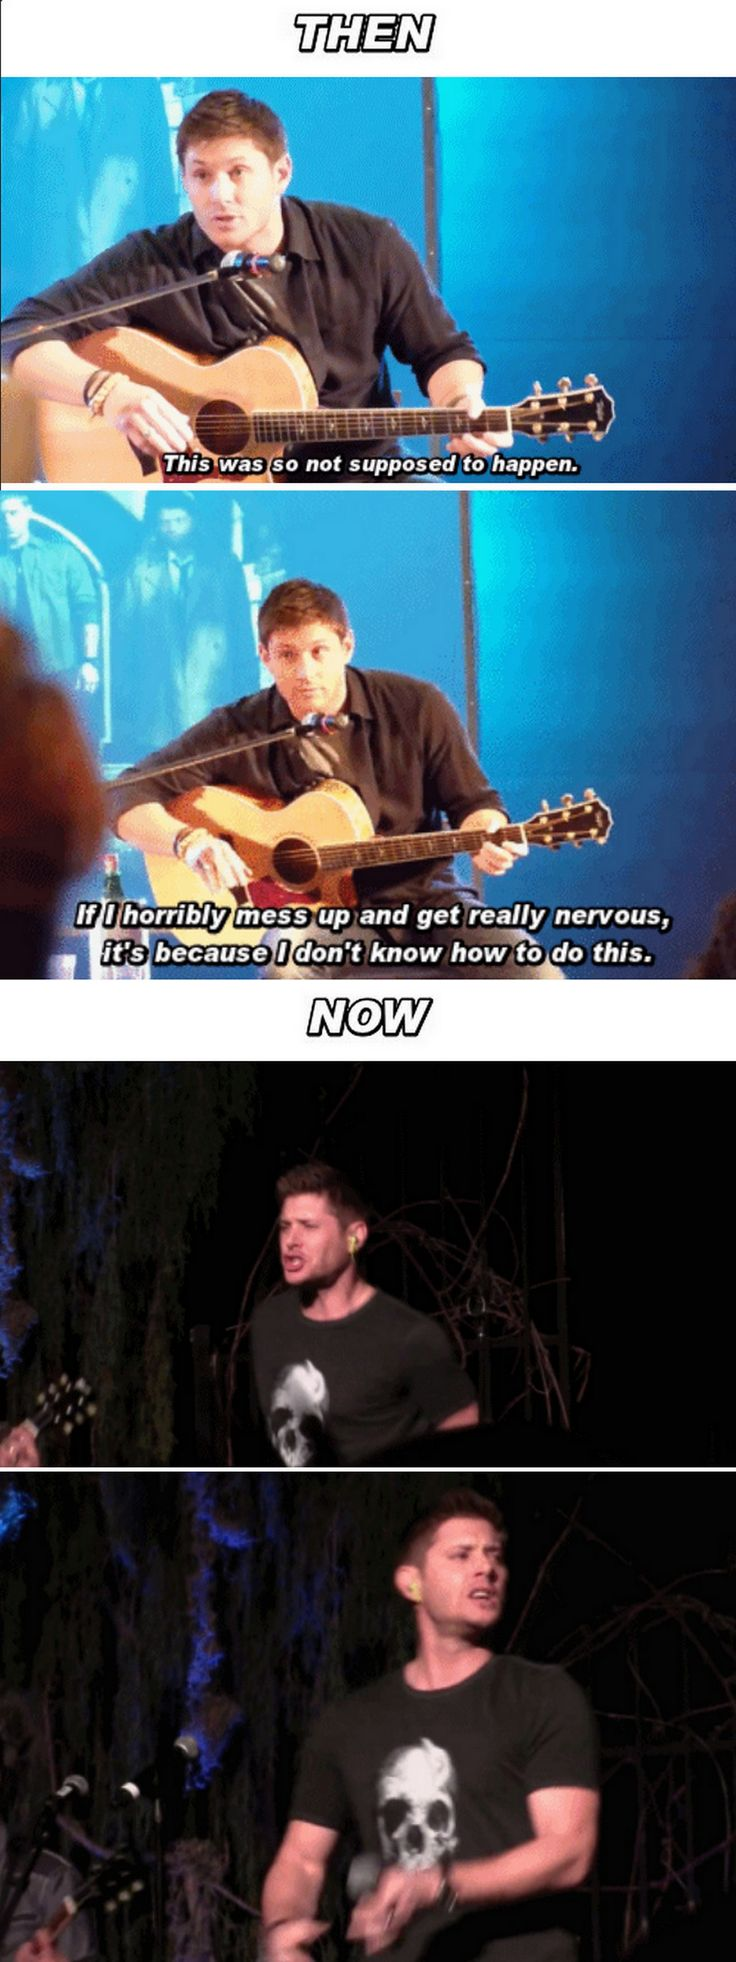 [GIFSET] Jensen performing at conventions Then and Now. It's great seeing how much more confident he's gotten over the years.